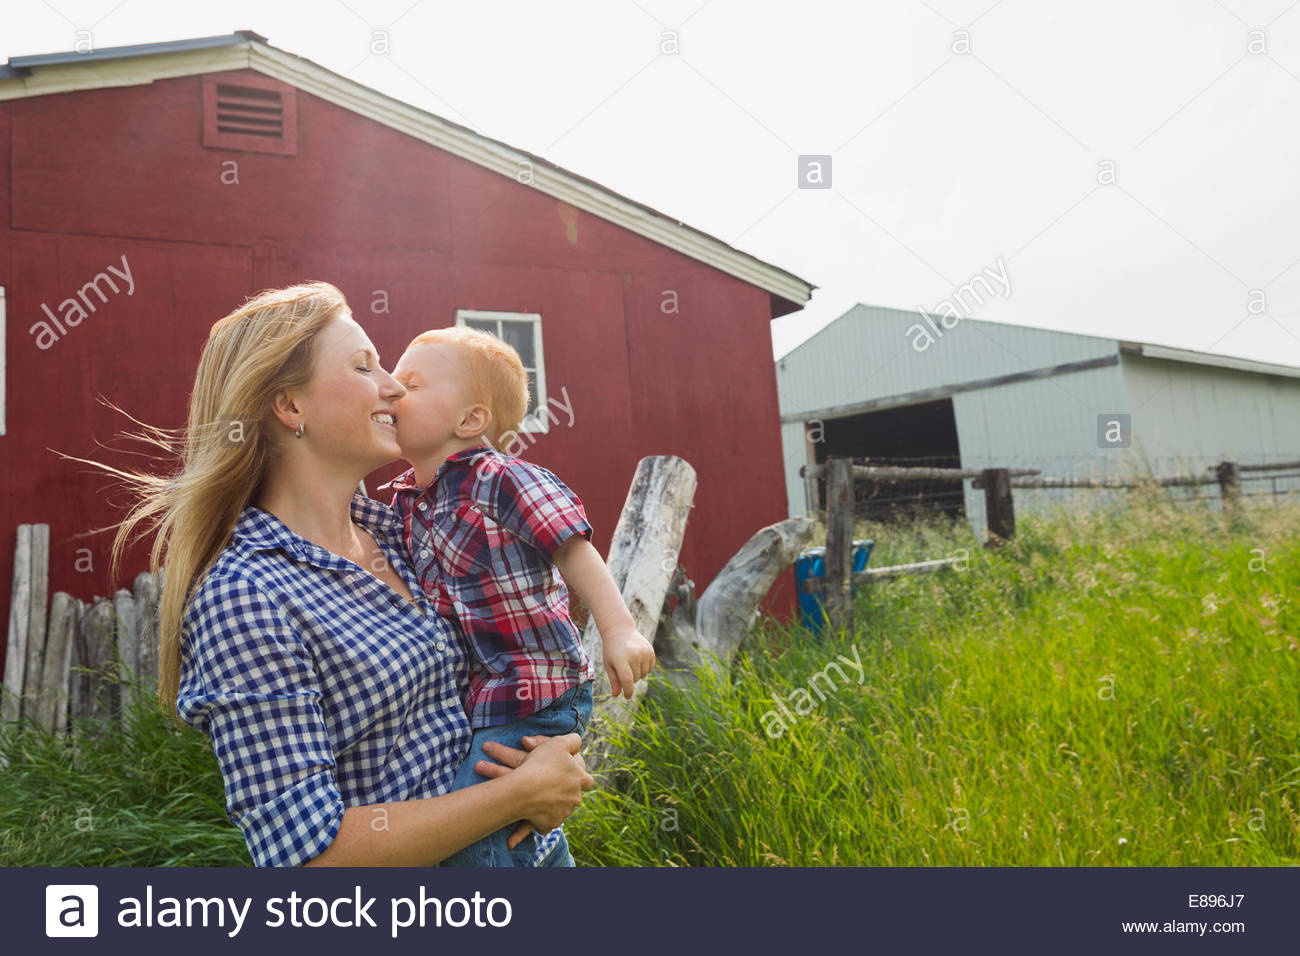 Little boy kissing mother on cheek, outdoors by barn - Stock Image